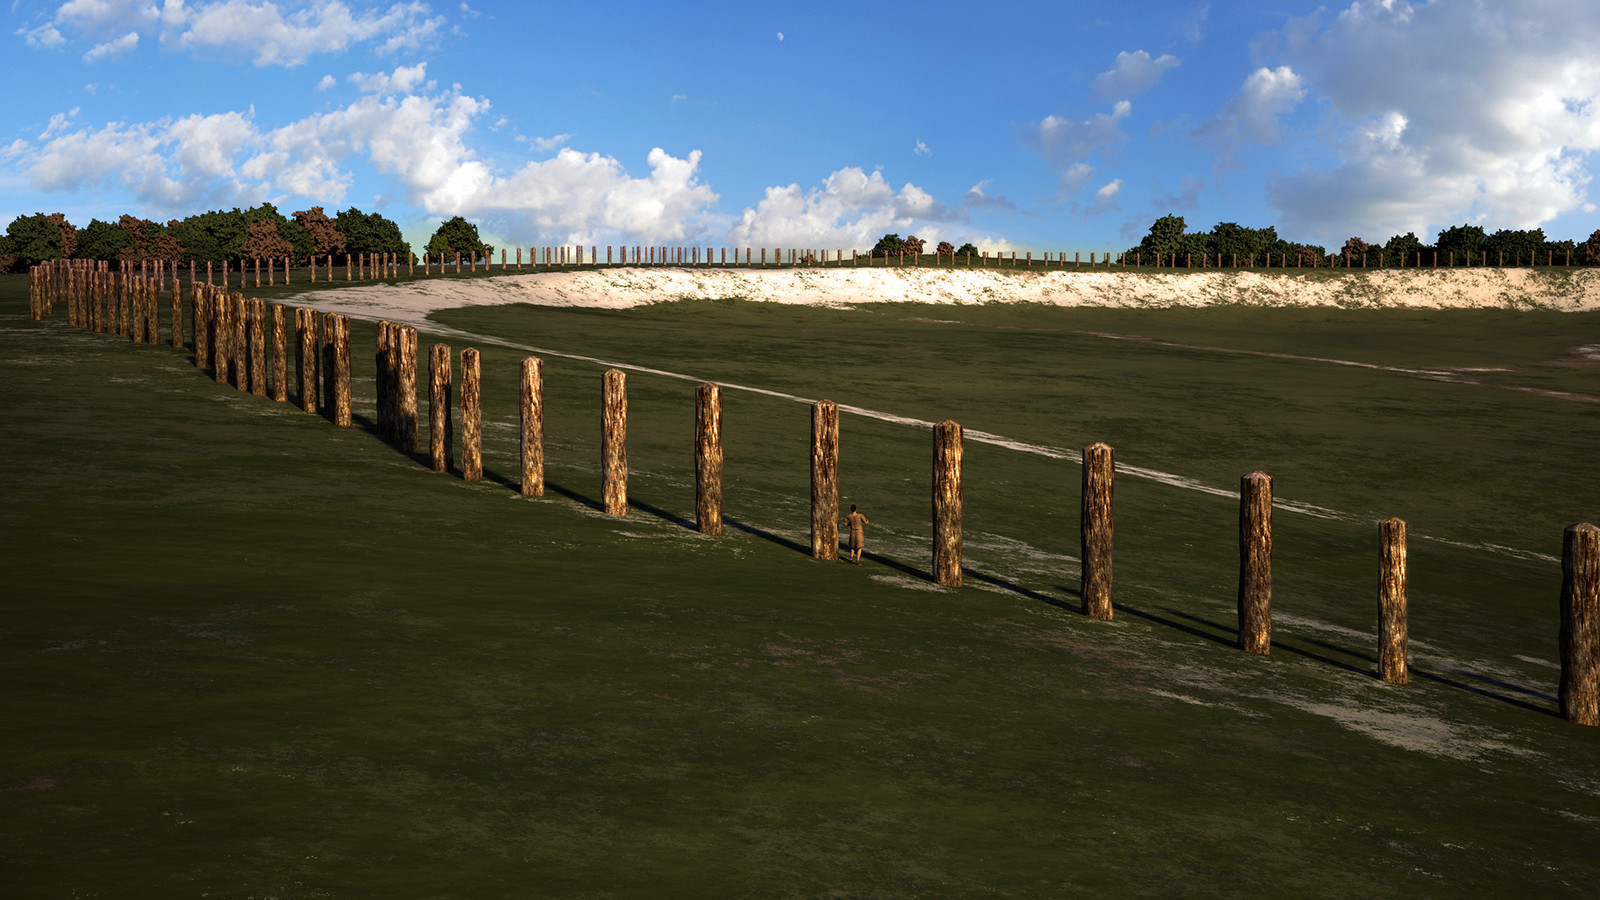 Durrington Walls at its first phase, with a super-henge made of timber posts that surrounded the site.